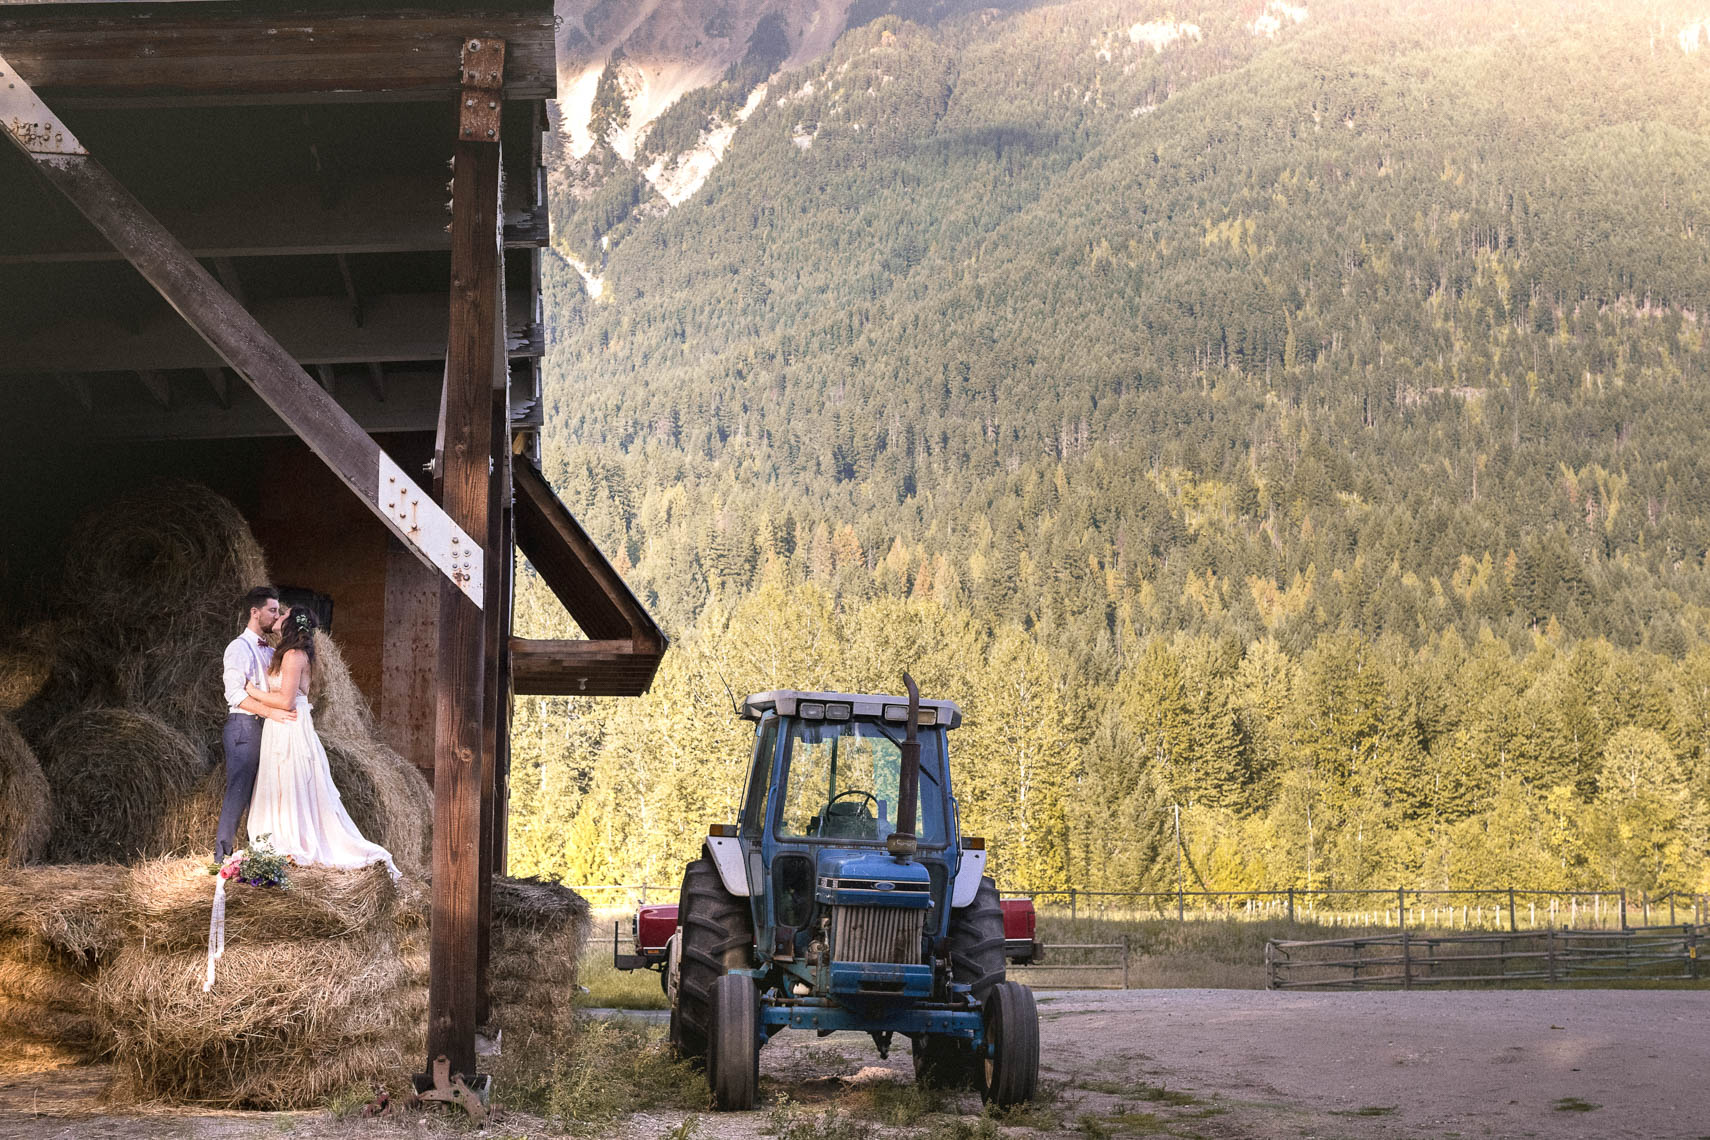 Bride and groom on bales of hay near a tractor during farm wedding